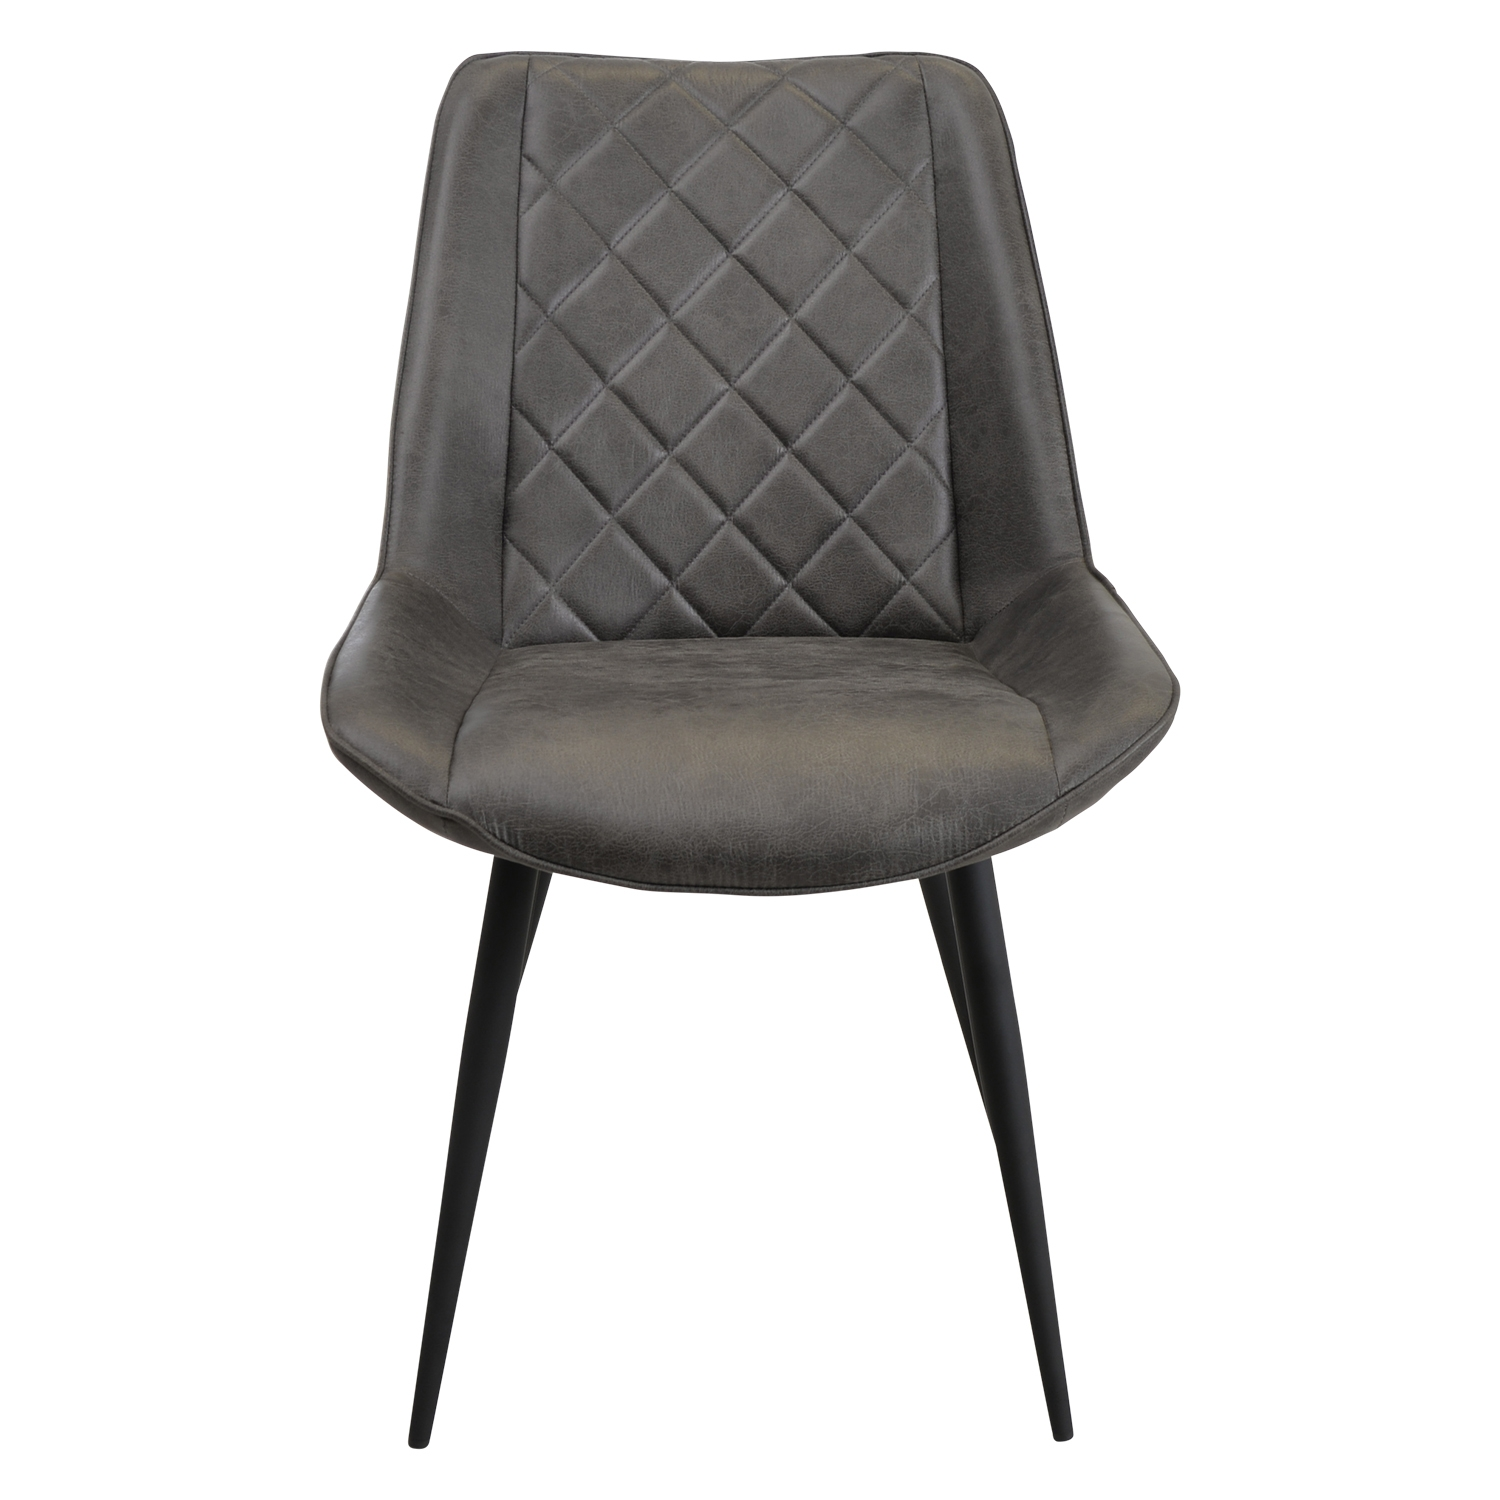 Image of Casa Brent Leather Dining Chair, Grey